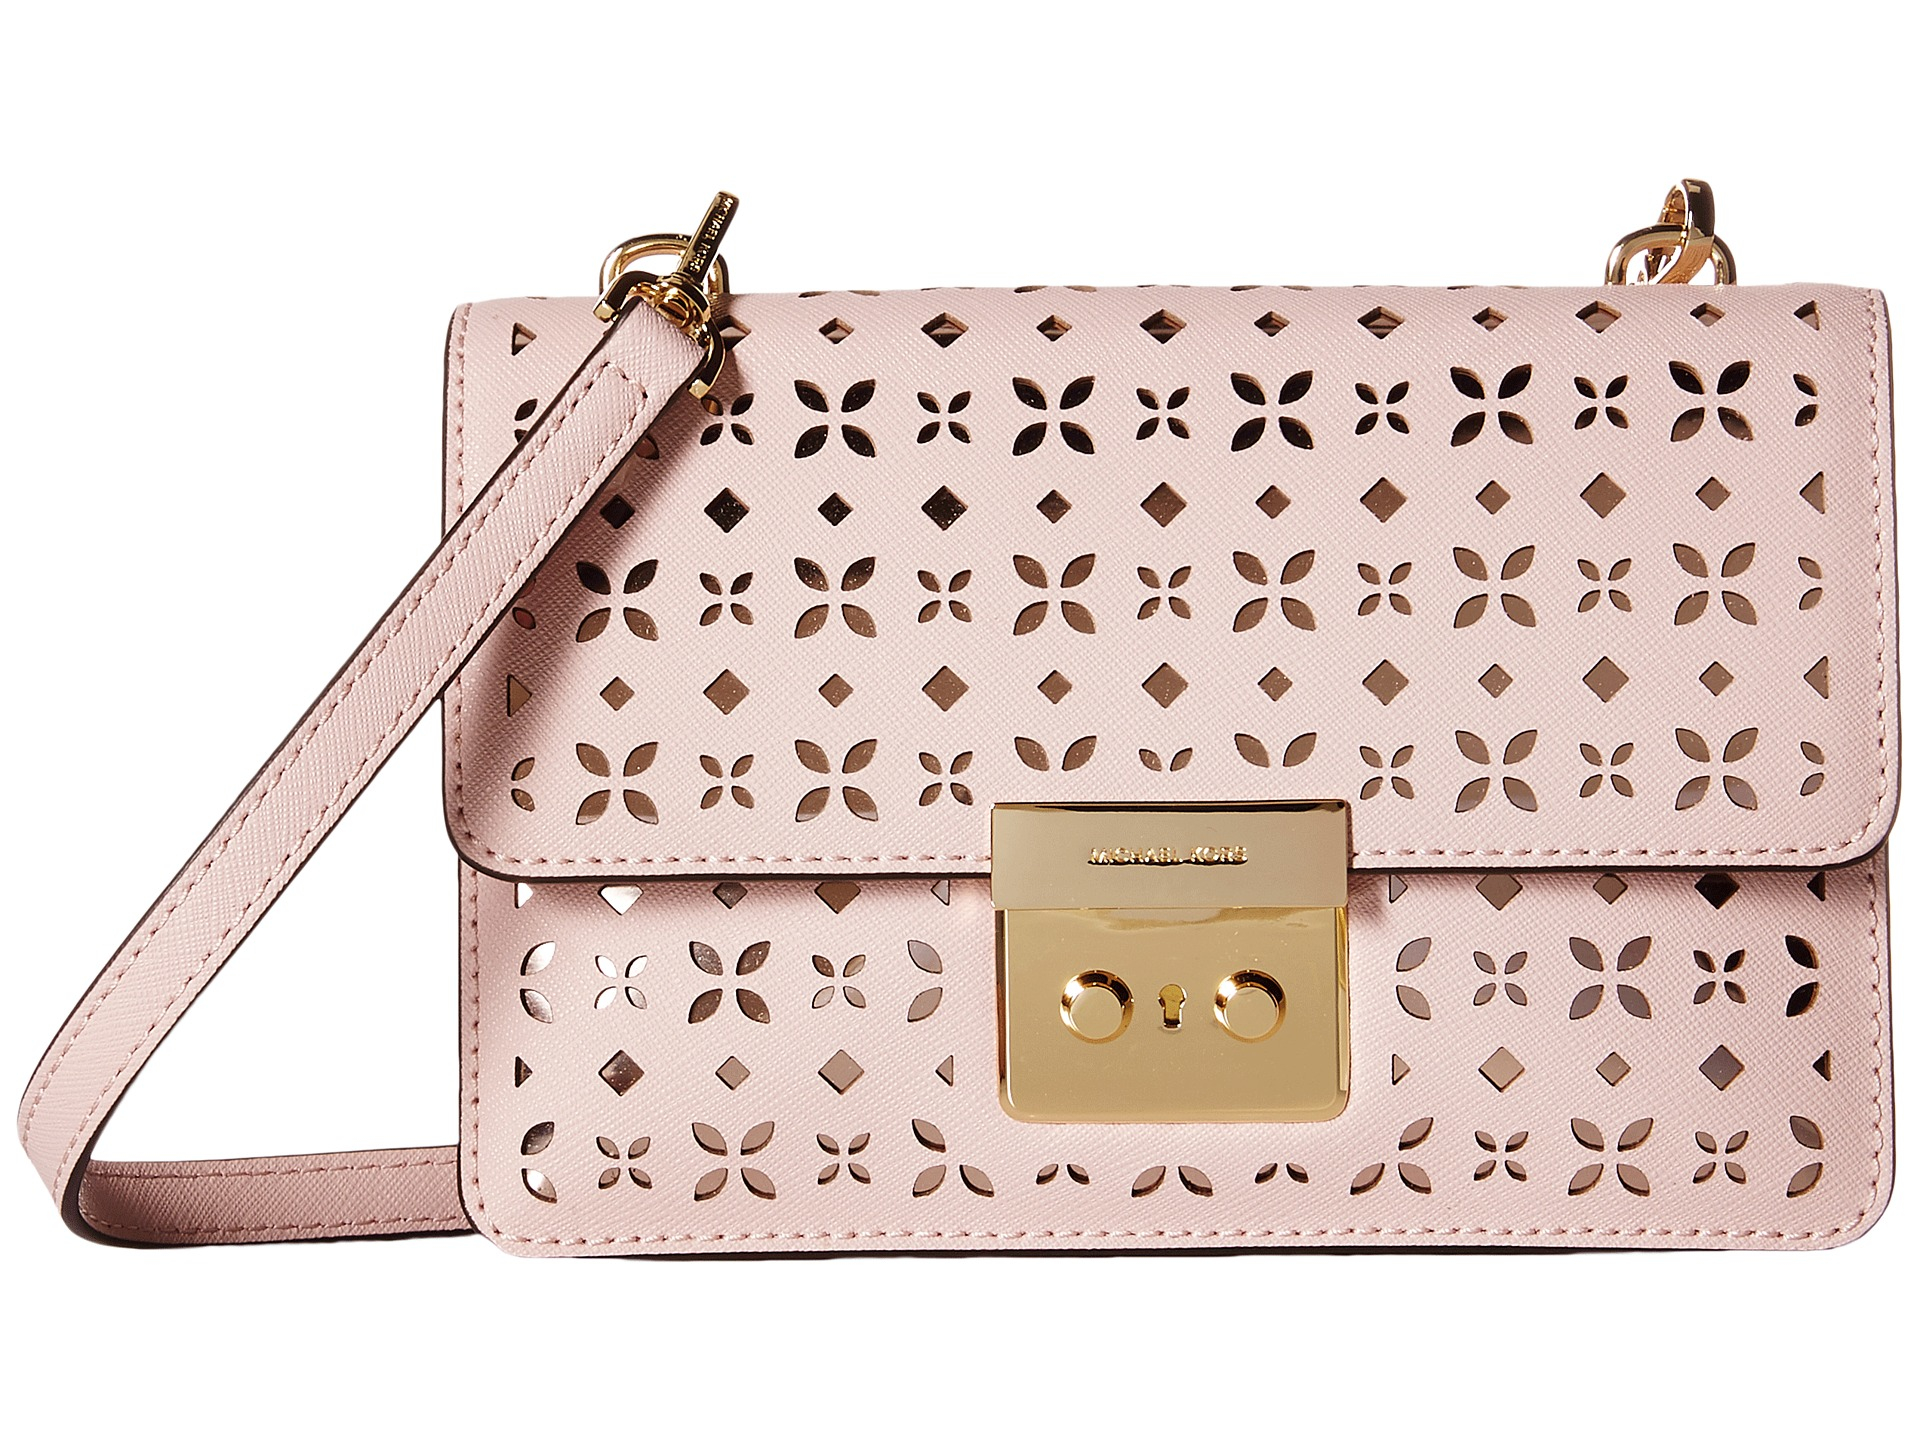 fedc163655b0 Gallery. Previously sold at: Zappos · Women's Michael By Michael Kors Sloan